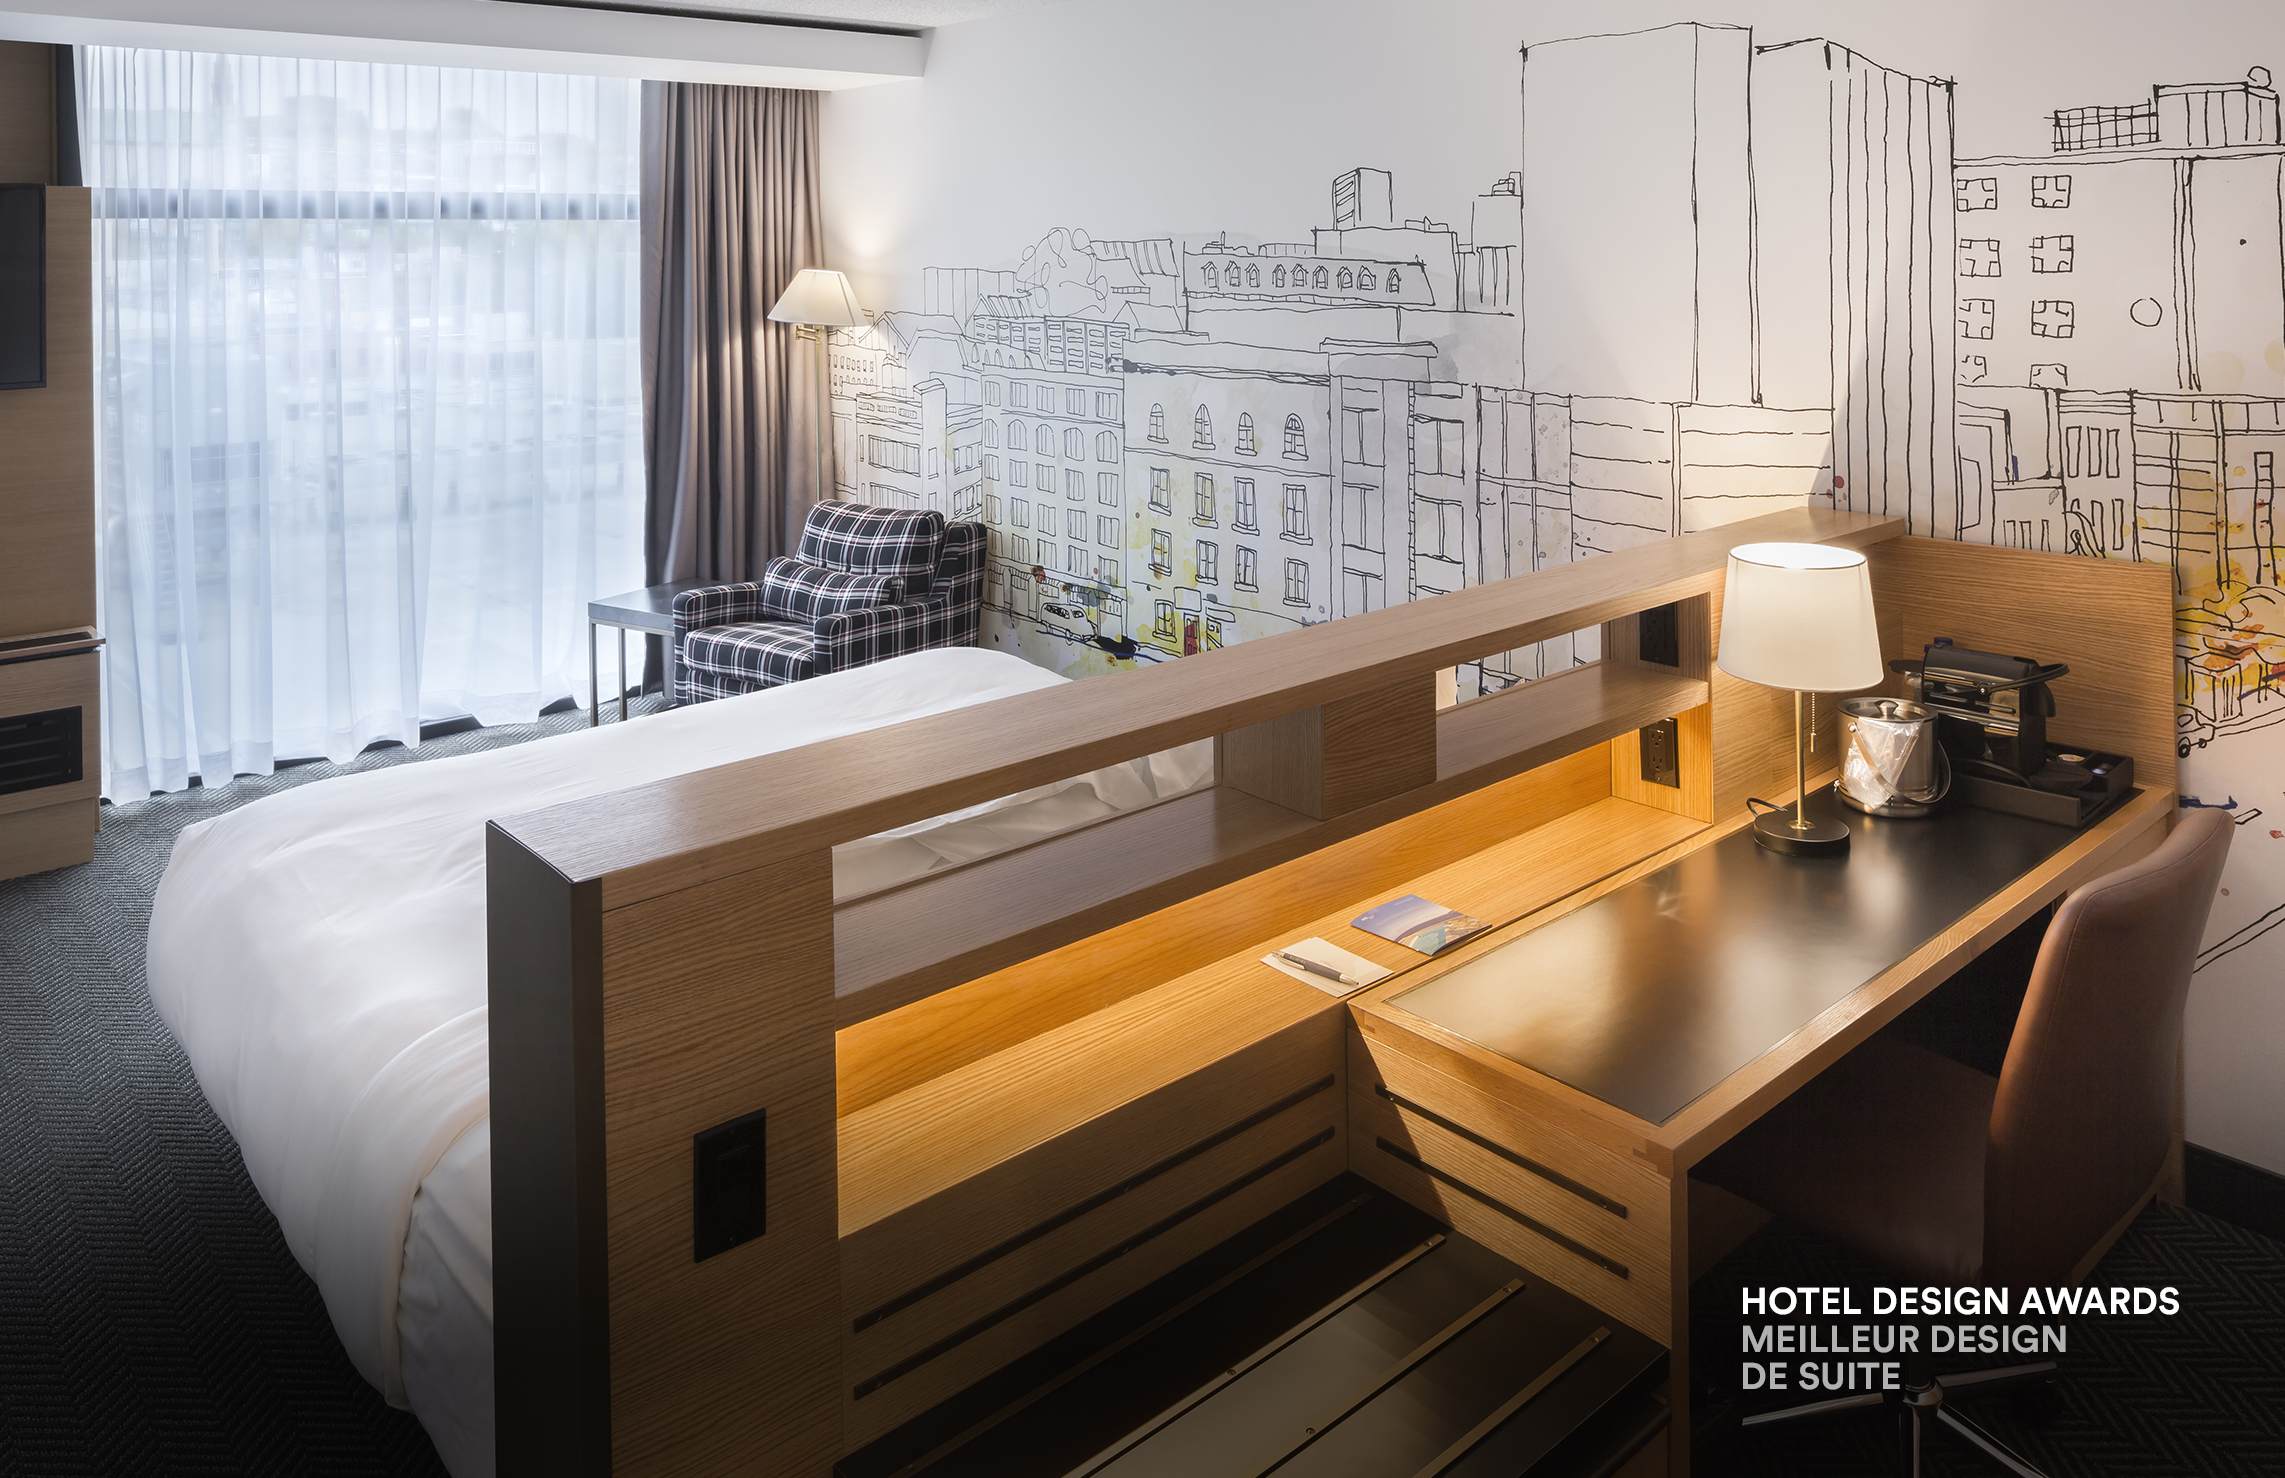 Hotel design awards hotelier magazine lemaymichaud y for Design hotel awards